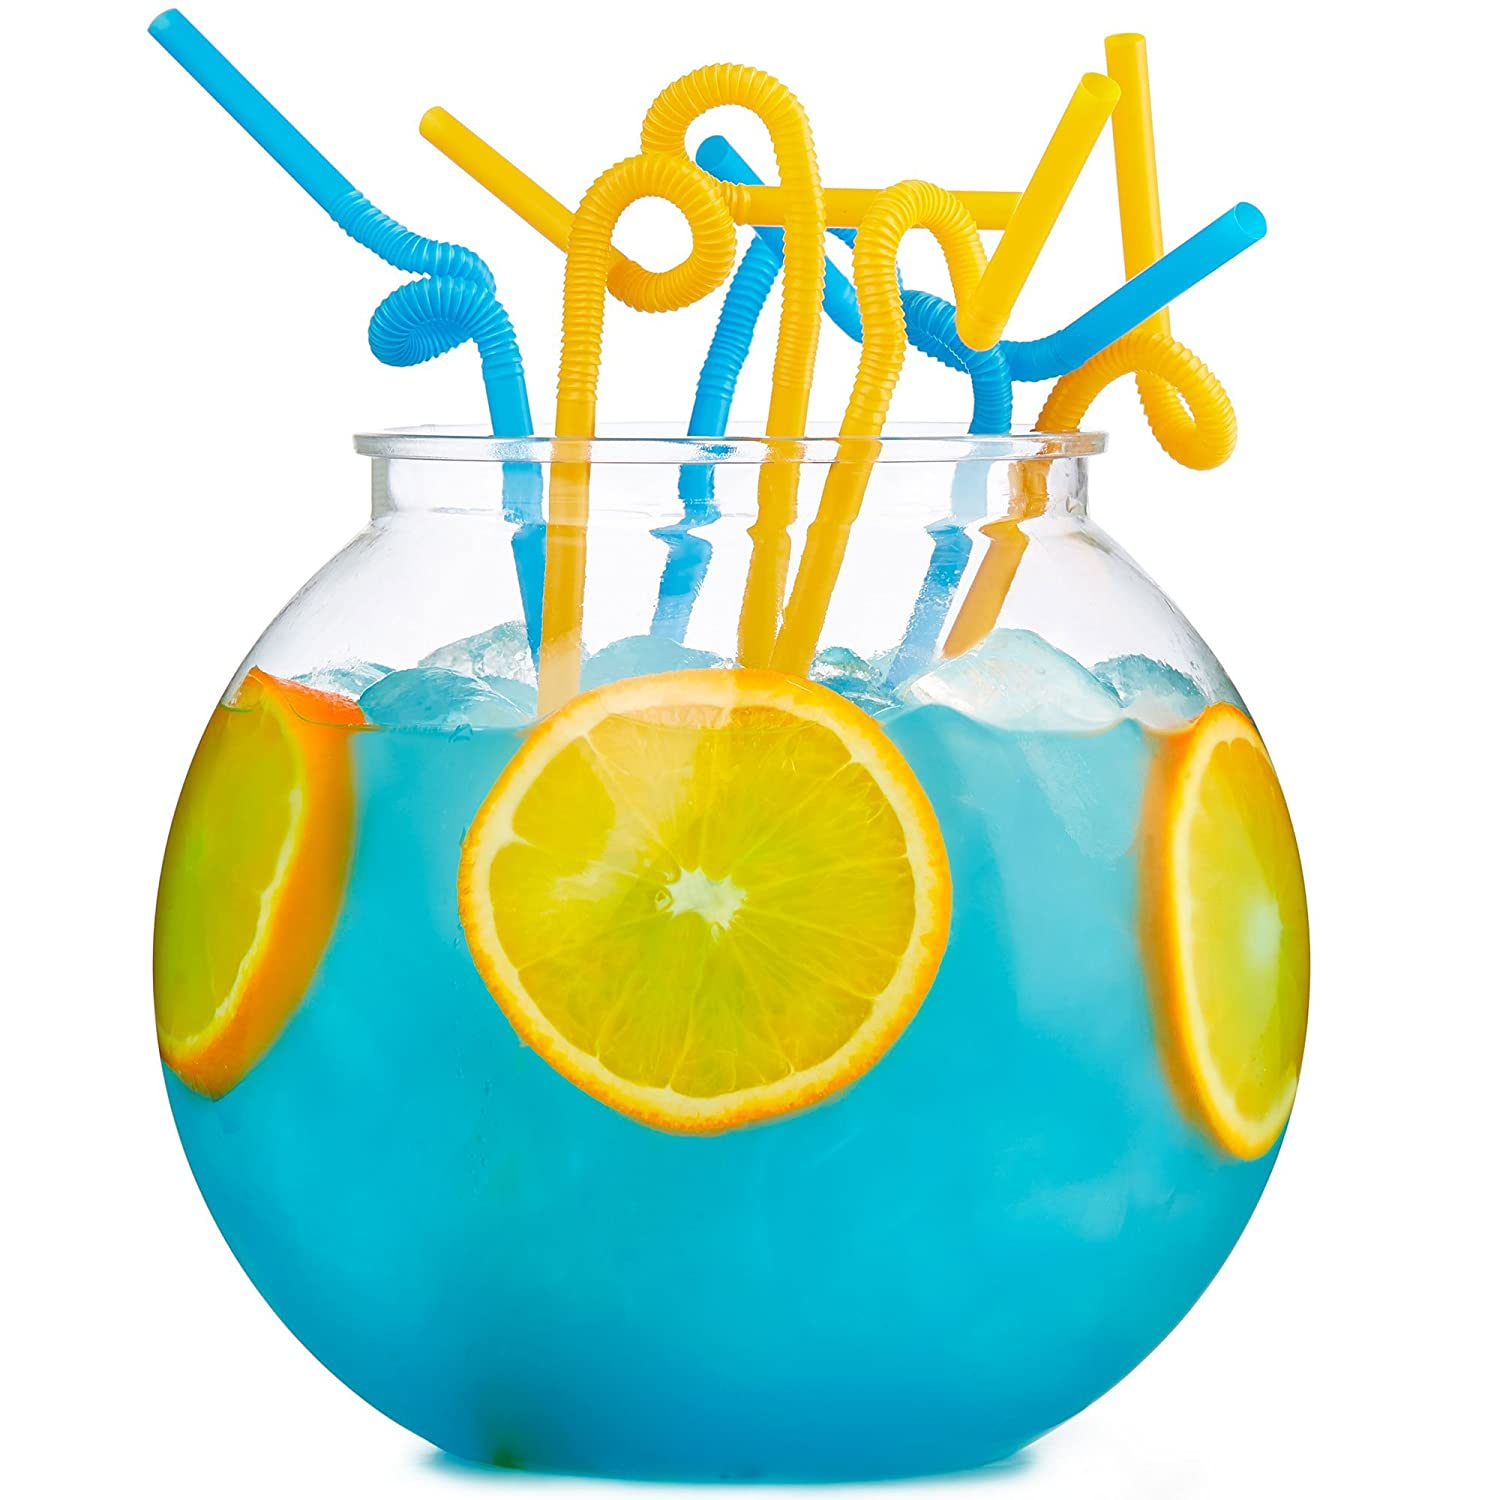 Andrew James Cocktail Fish Bowl Set with 30 Extra Long Plastic Straws | Extra Large 3 Litre Reusable Acrylic Drinks Bowl | Perfect Party Accessory